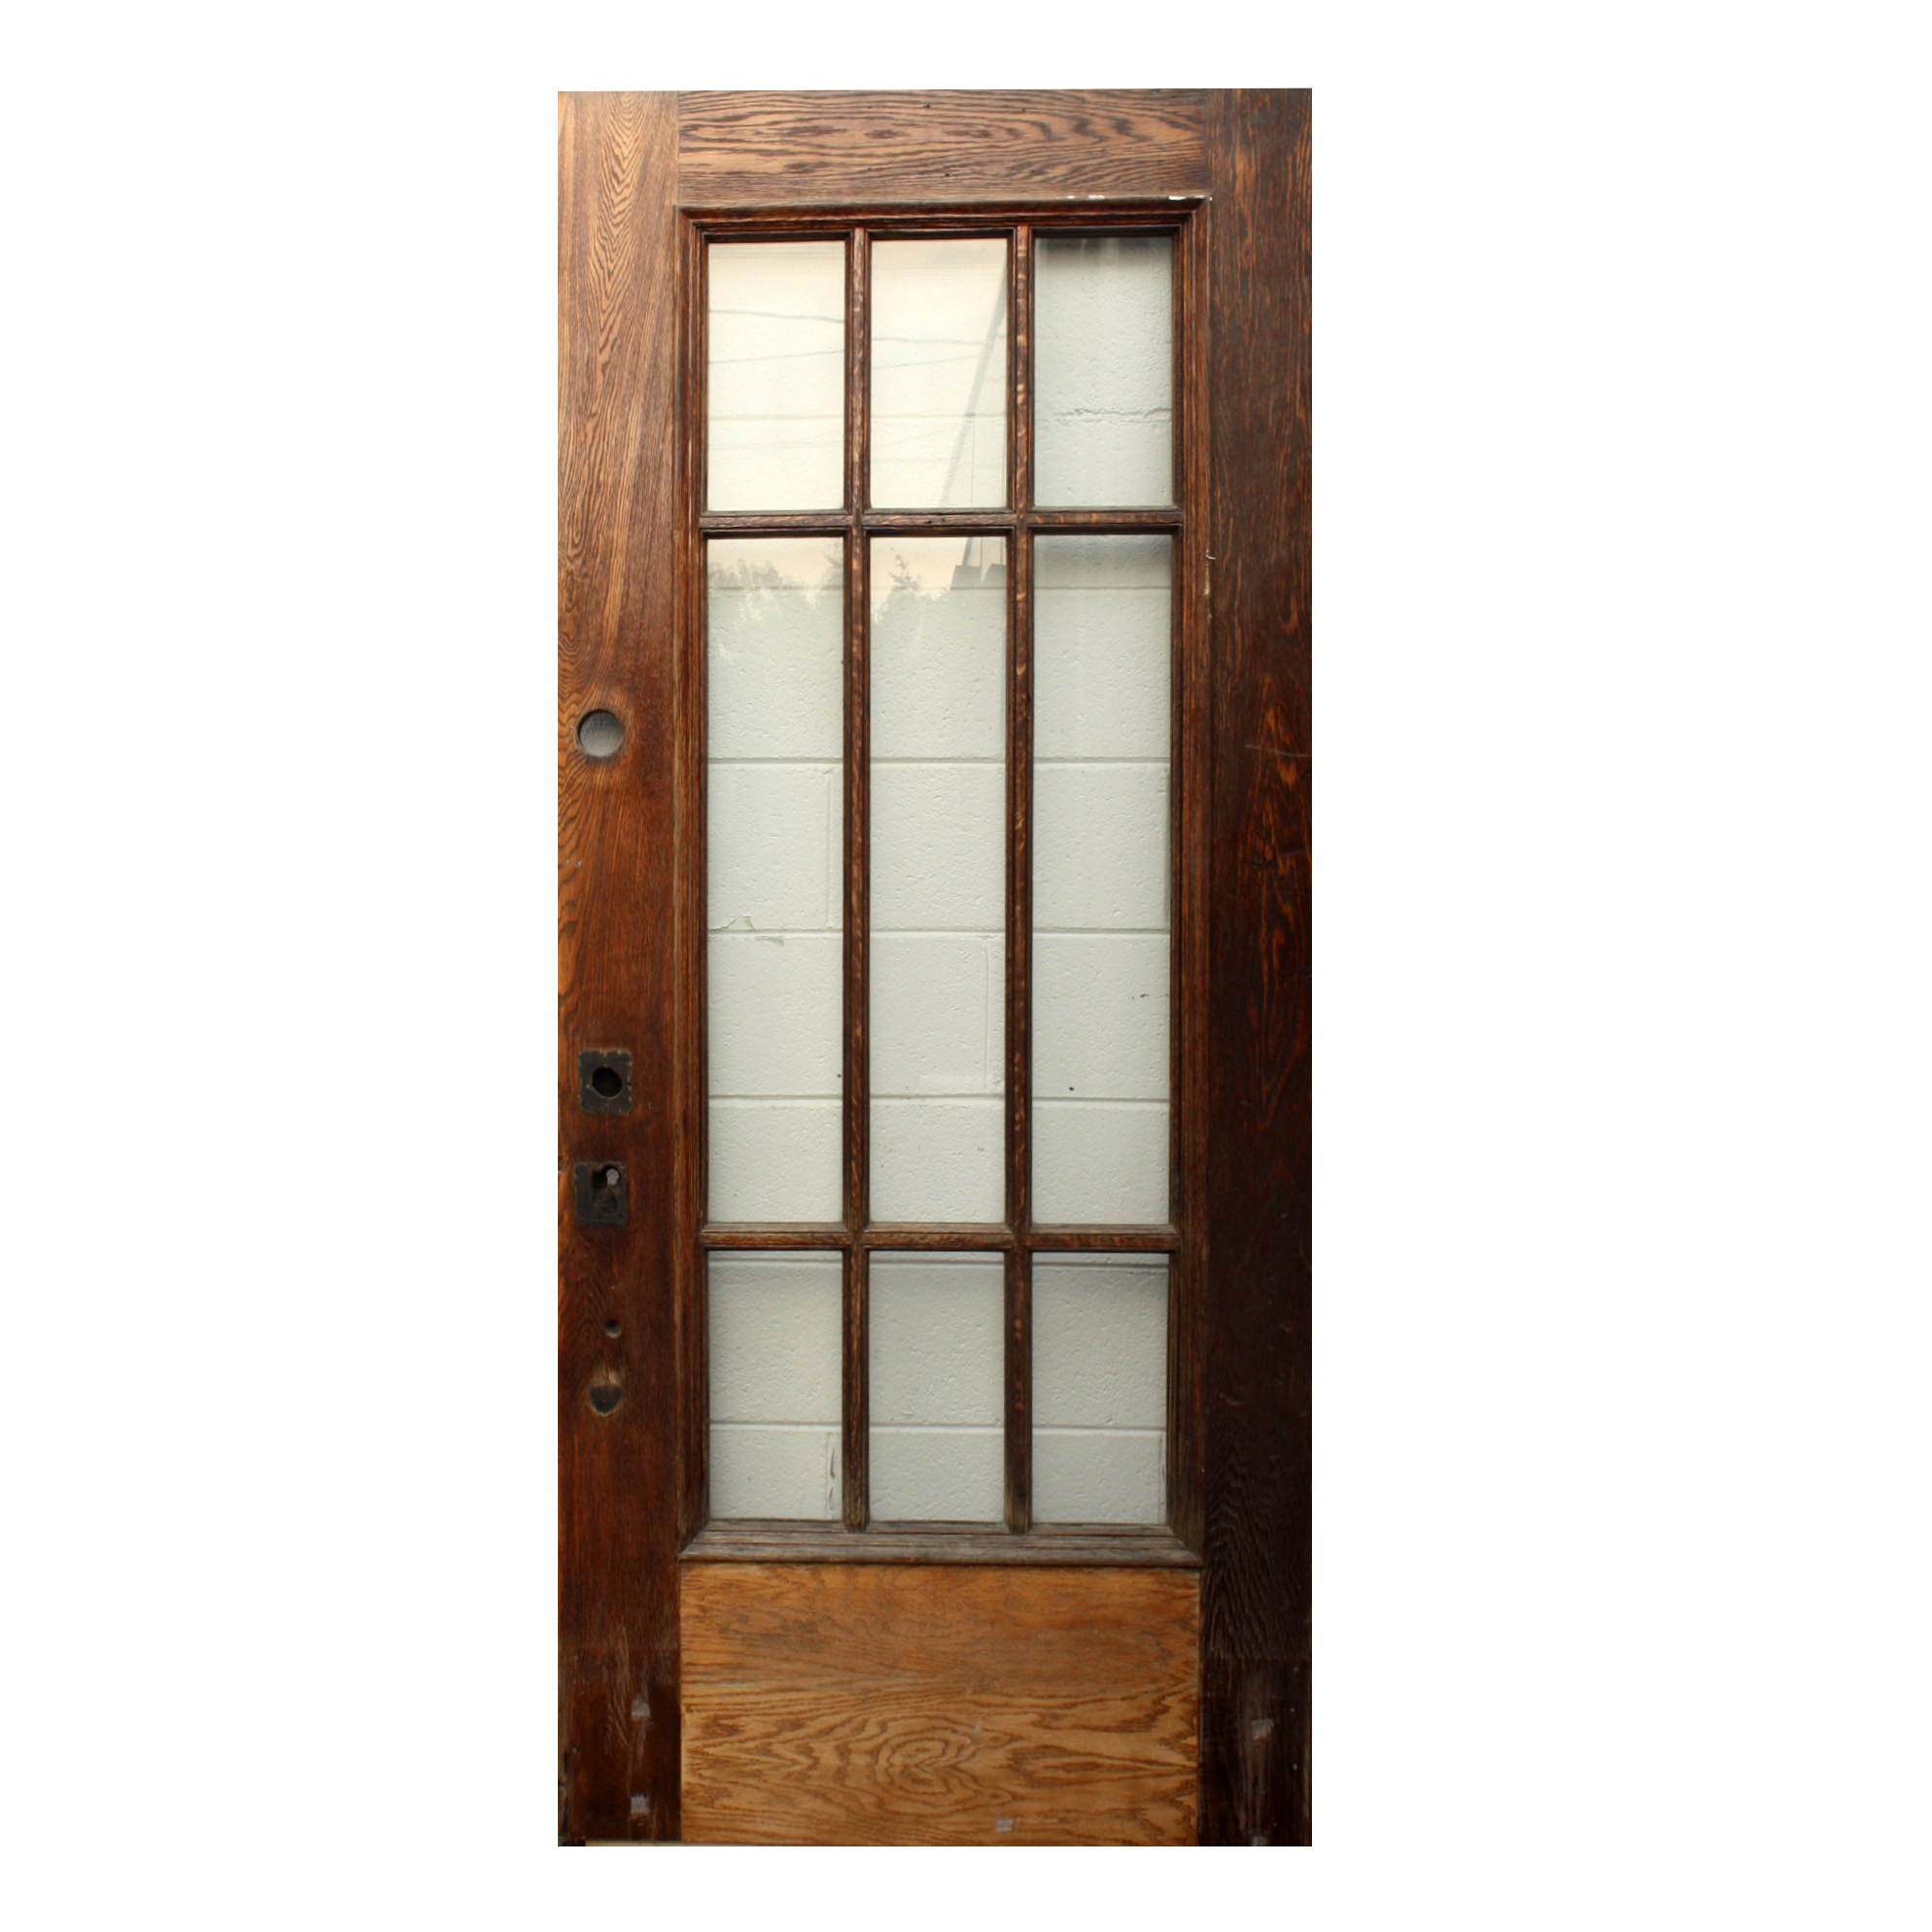 Reclaimed 36 Exterior Oak Prairie Style Door NED182 For Sale